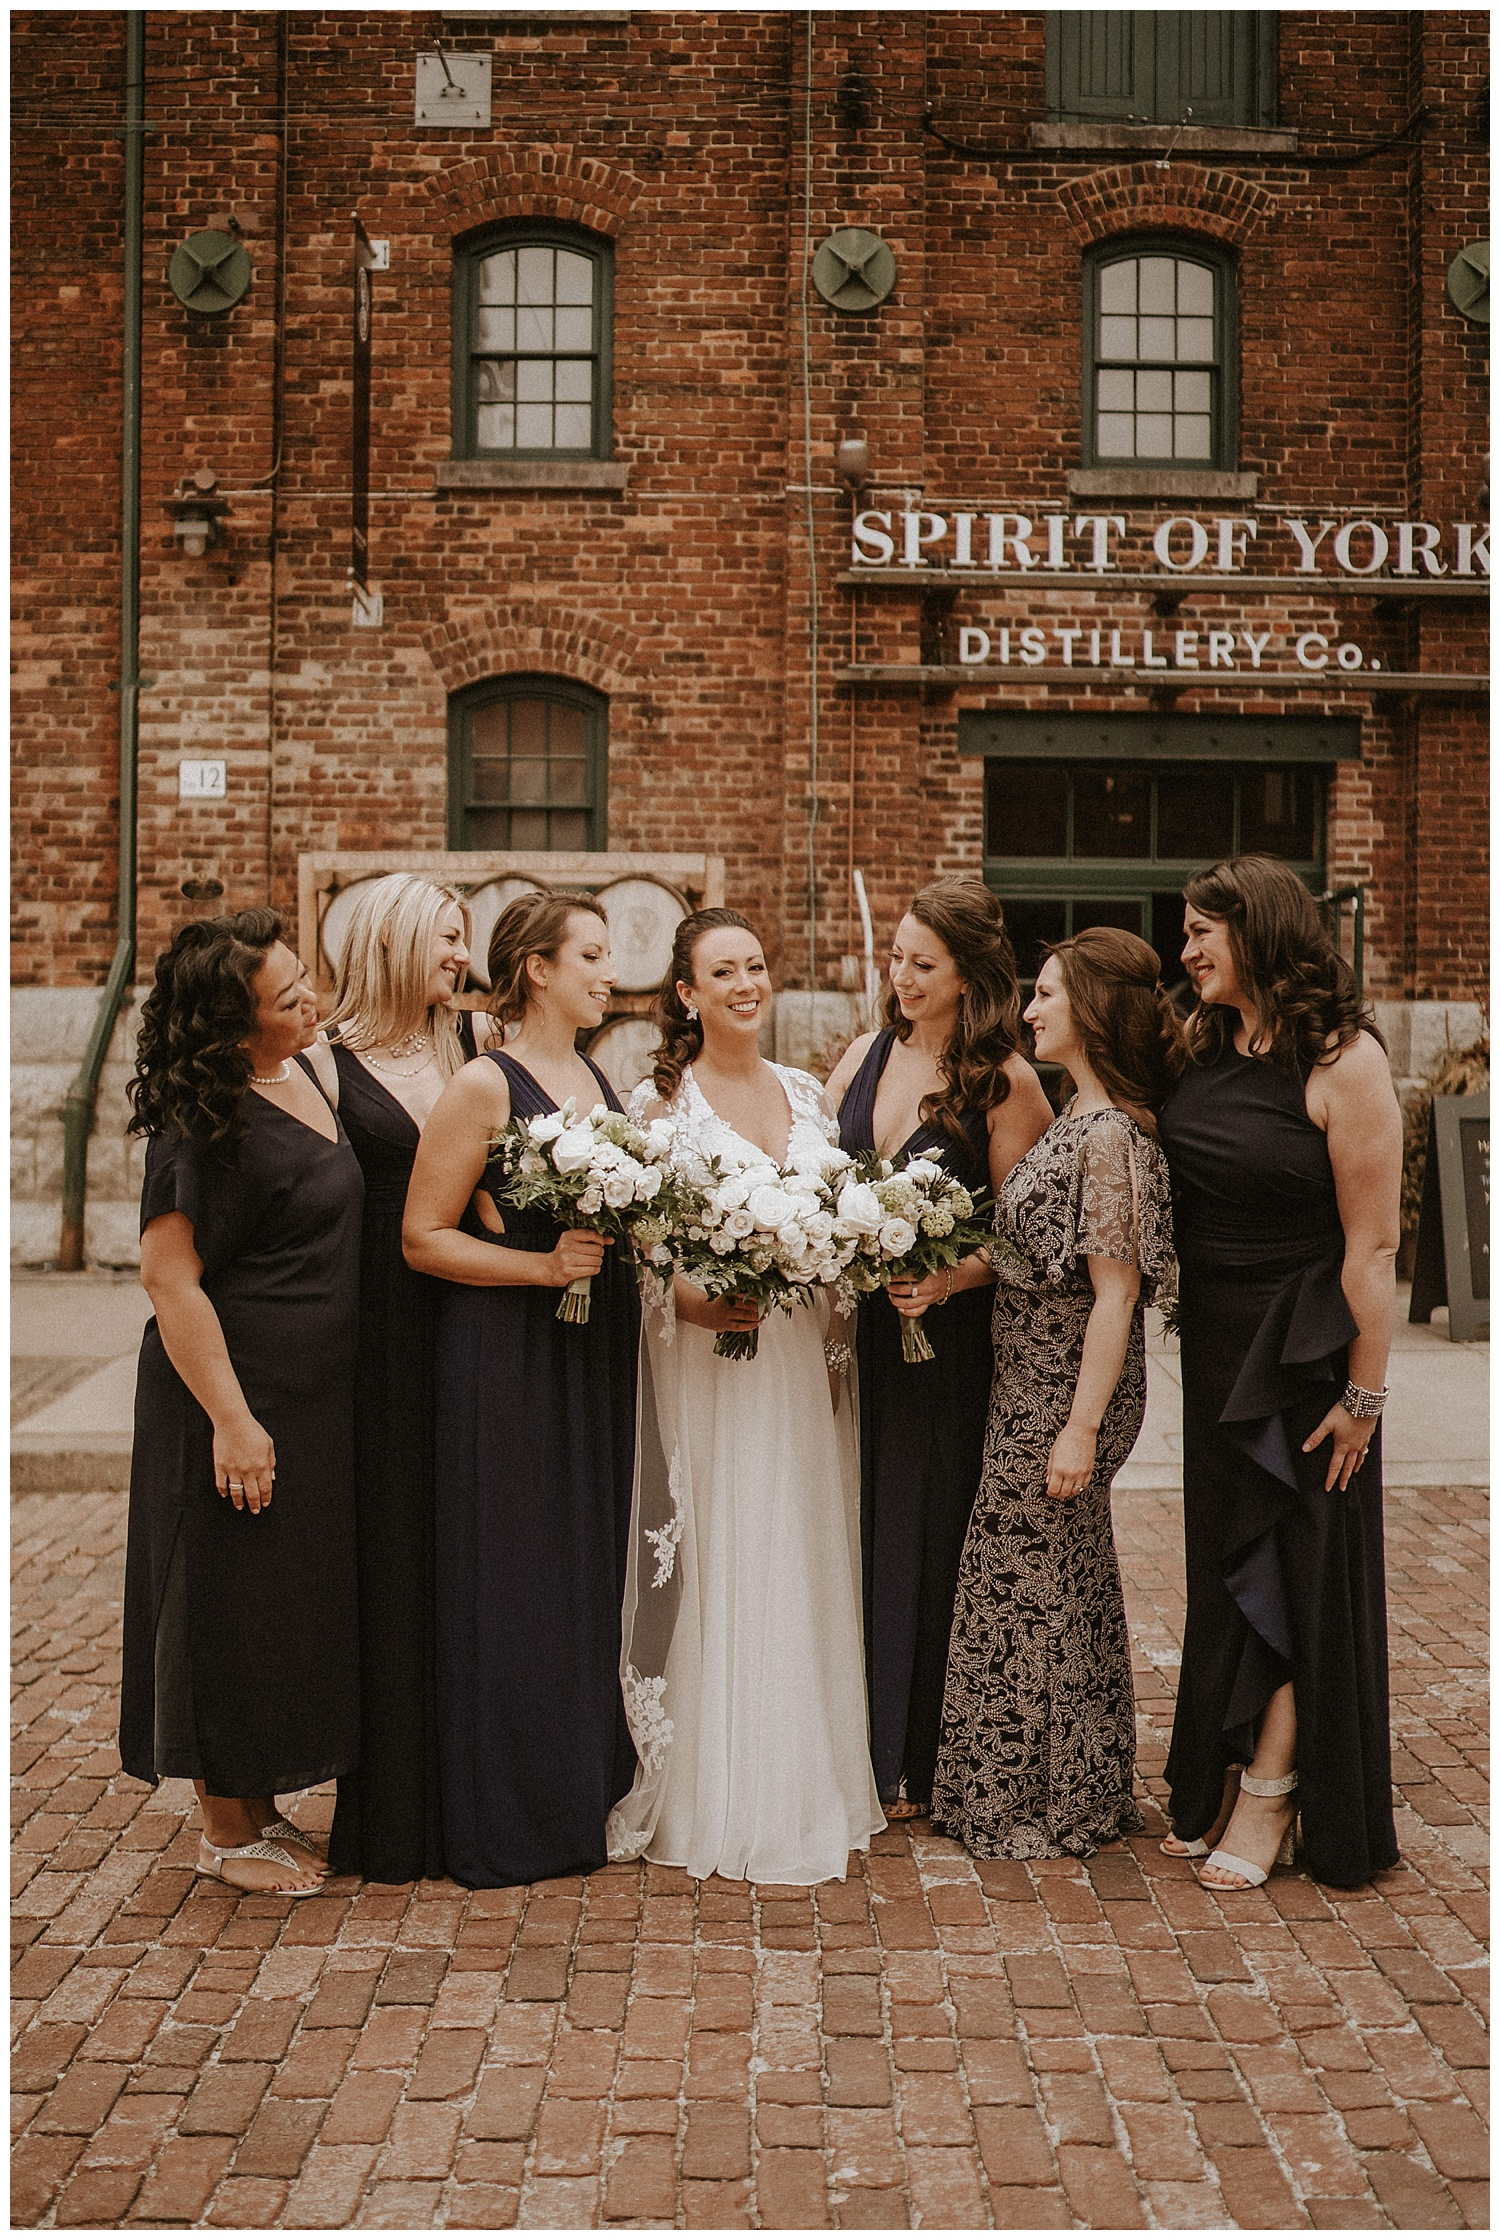 Katie Marie Photography | Archeo Wedding Arta Gallery Wedding | Distillery District Wedding | Toronto Wedding Photographer | Hamilton Toronto Ontario Wedding Photographer |_0062.jpg